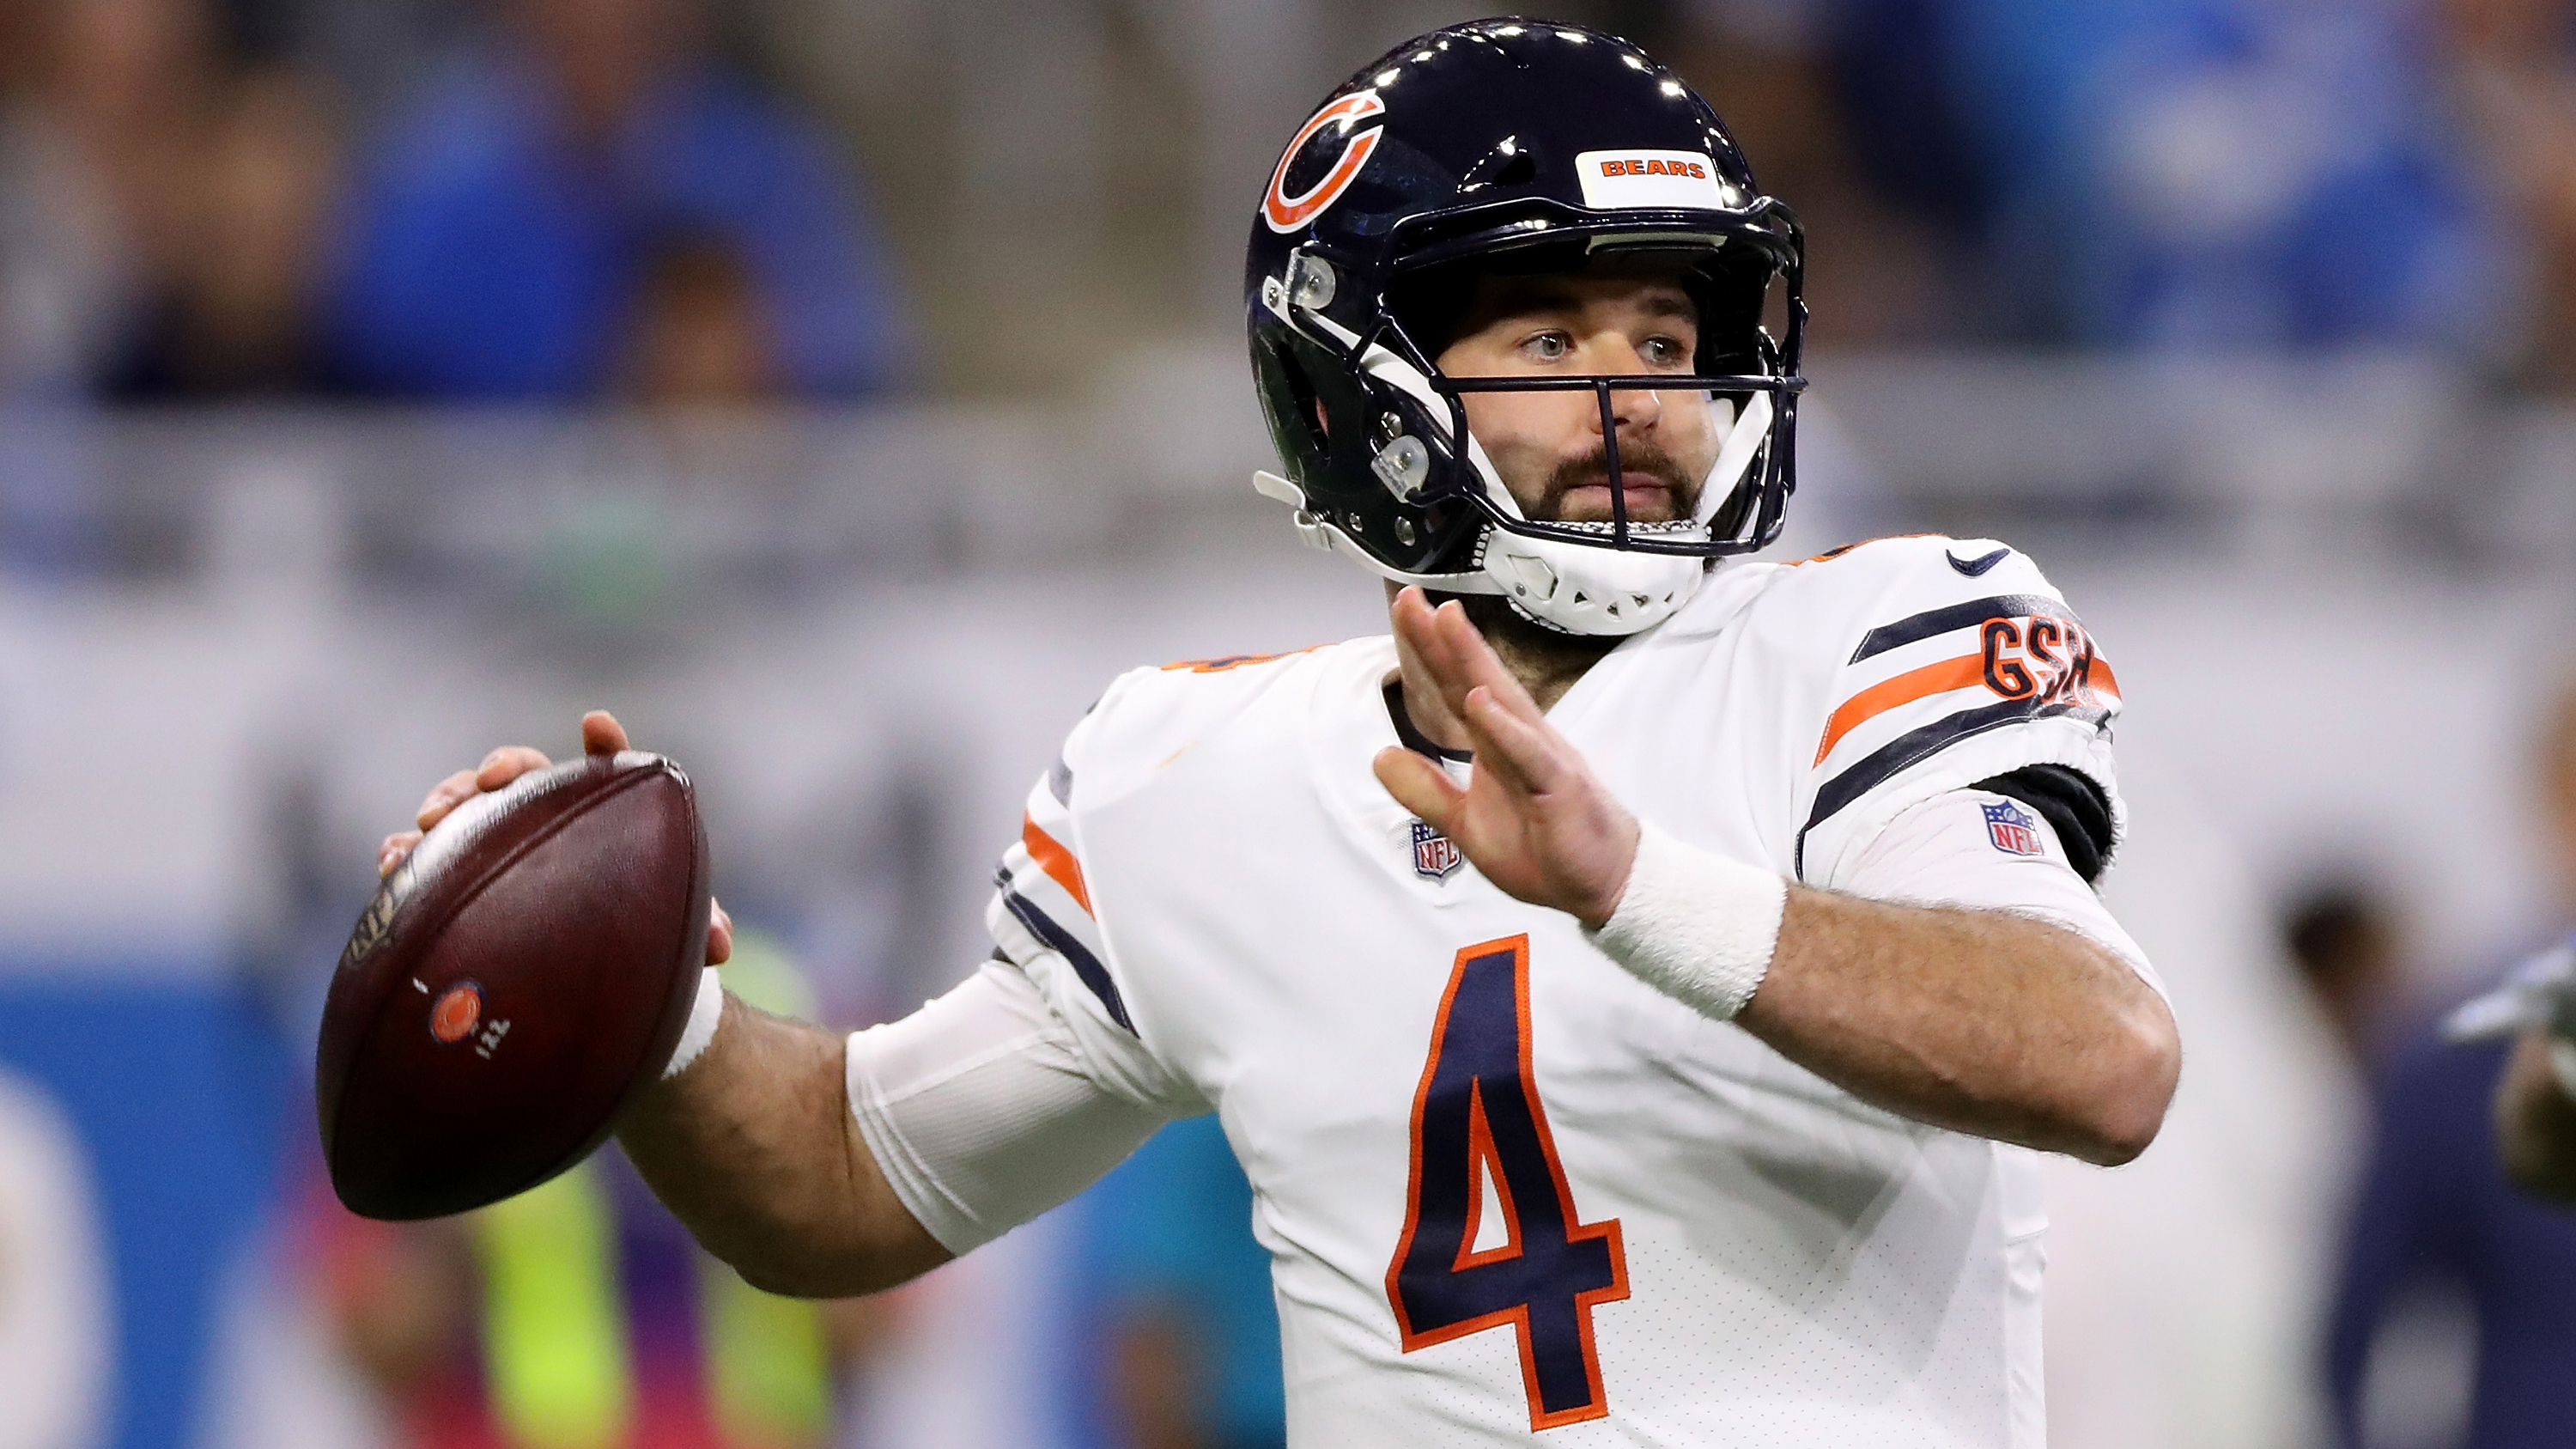 Mitchell Trubisky injury  Bears QB replaced by Chase Daniel  173d93d31